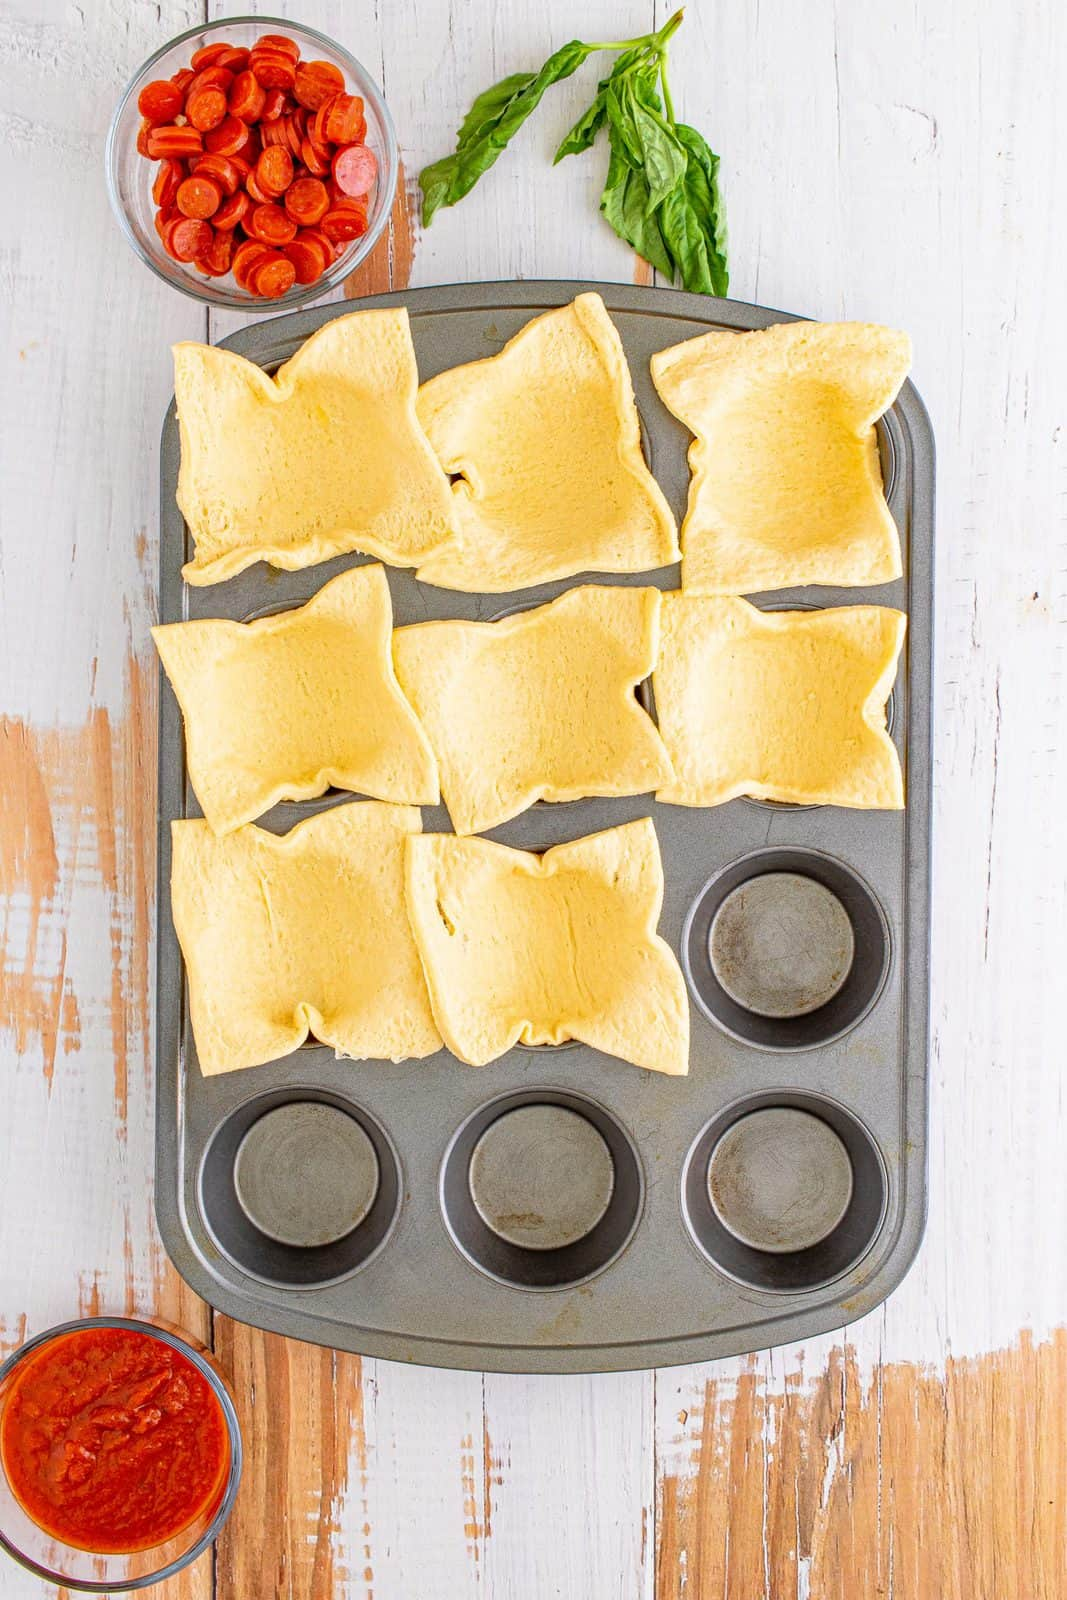 Crescent dough sheet cut into 8 sections and placed into prepared muffin tin.